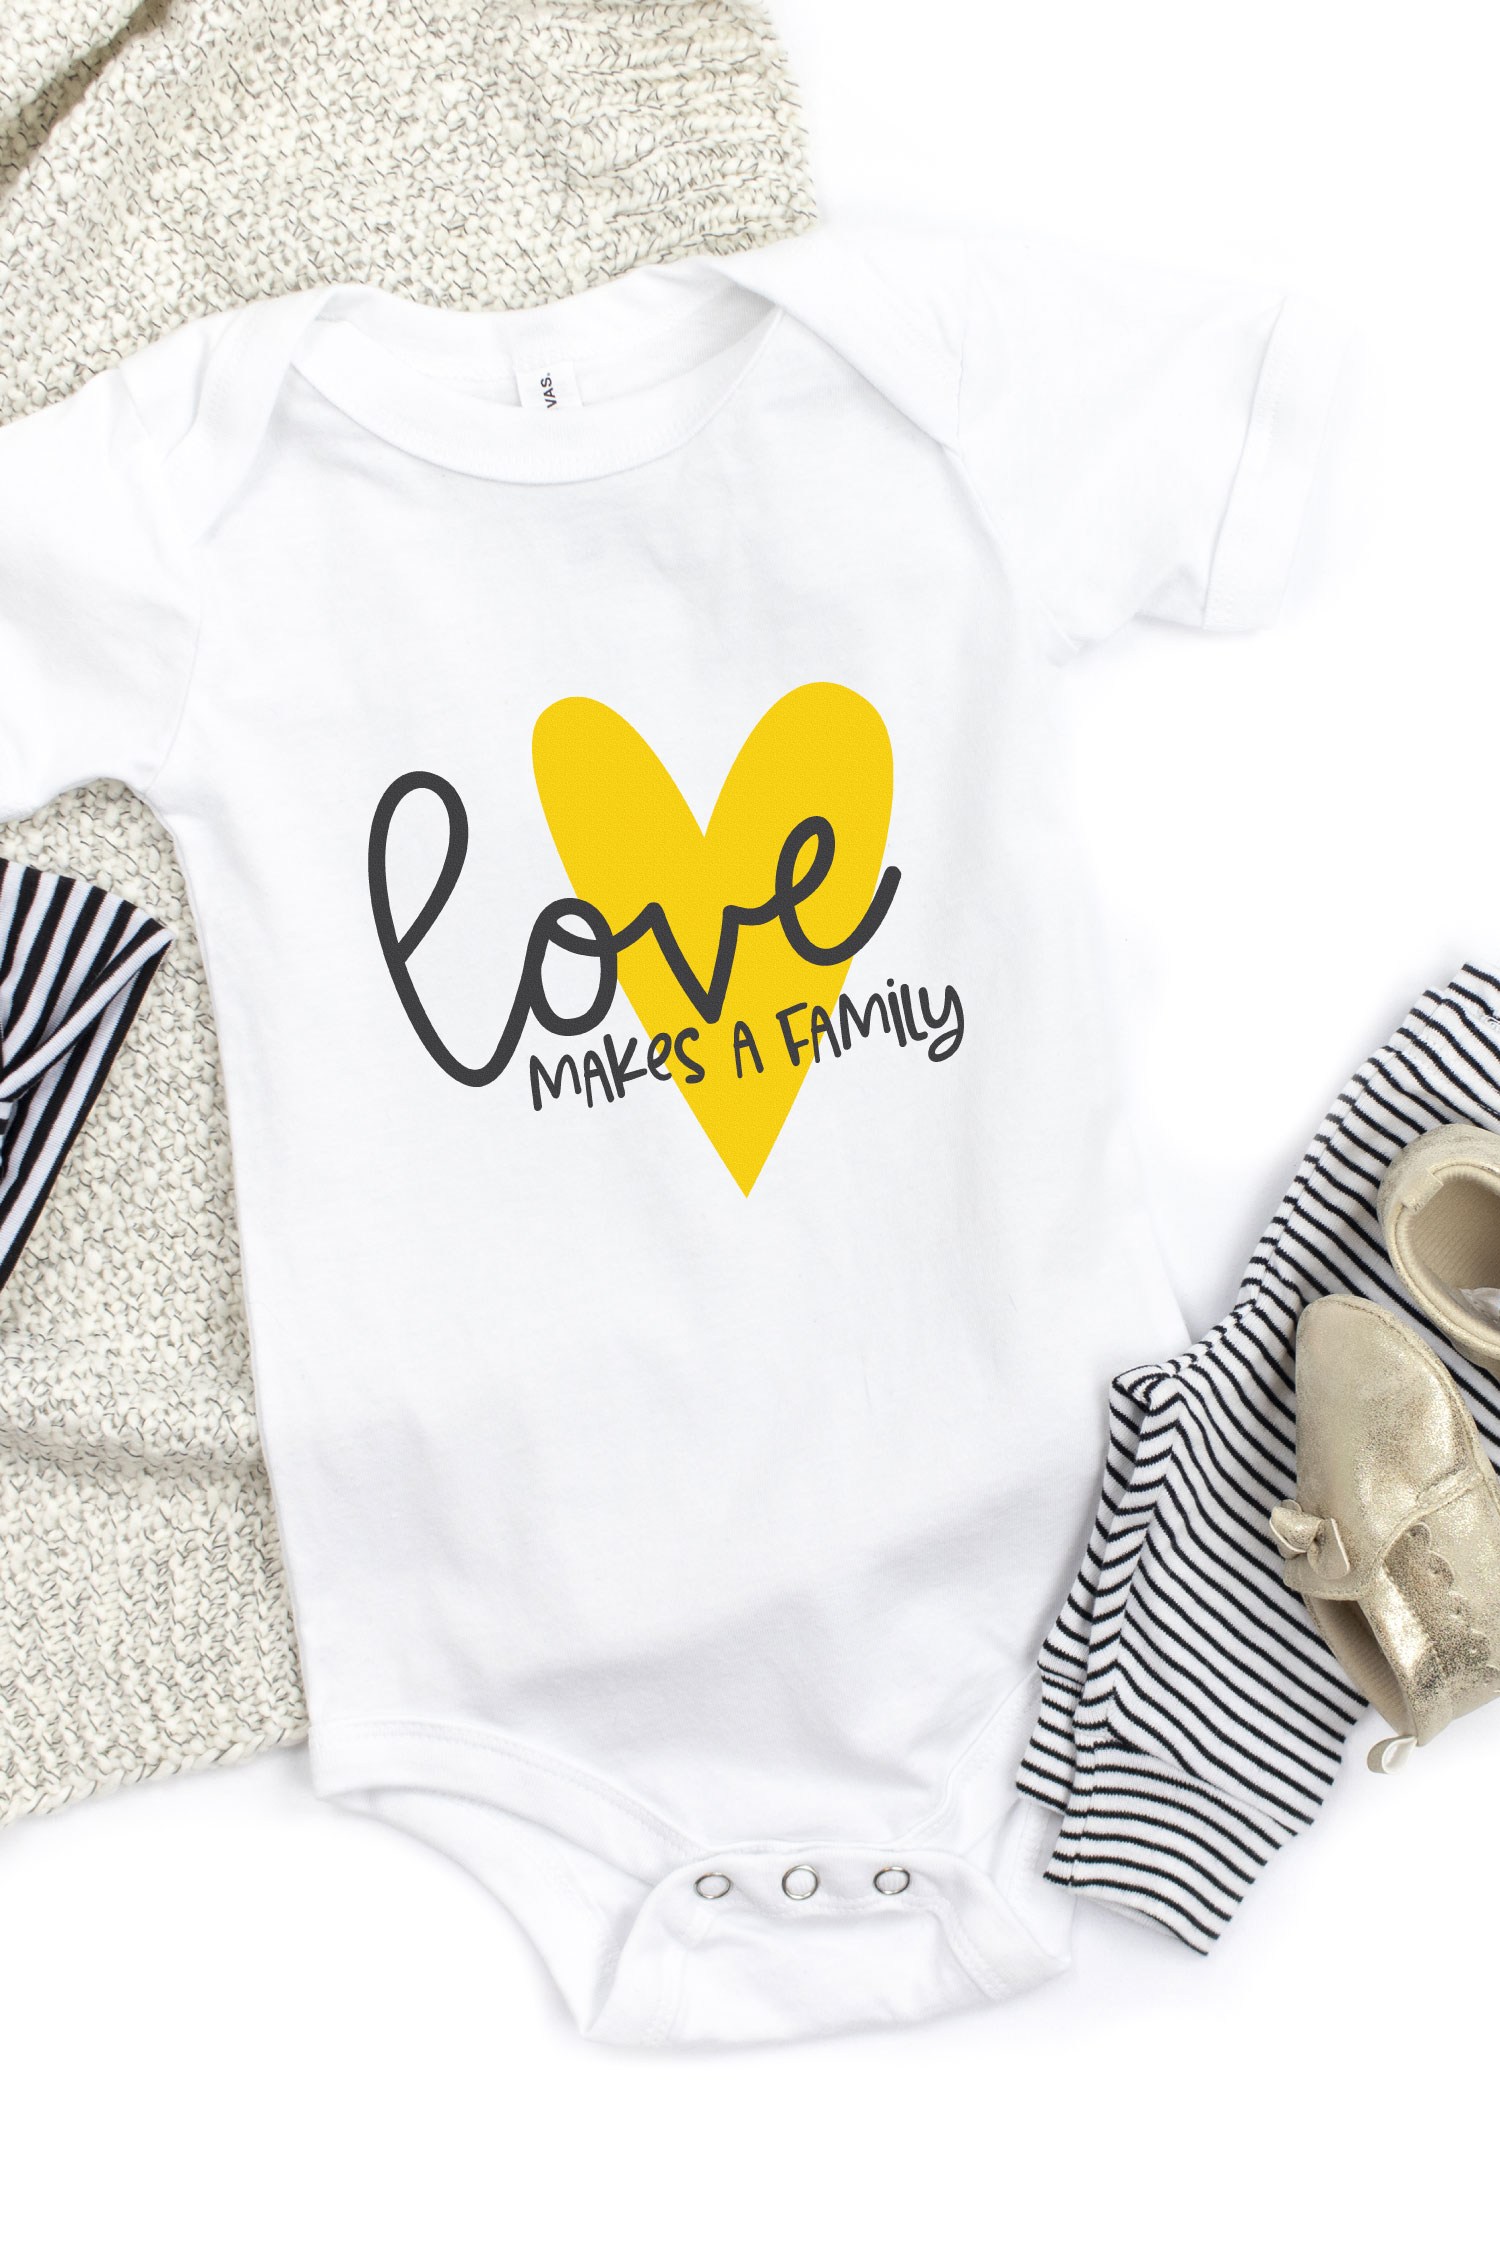 Love Makes a Family decal on a onesie